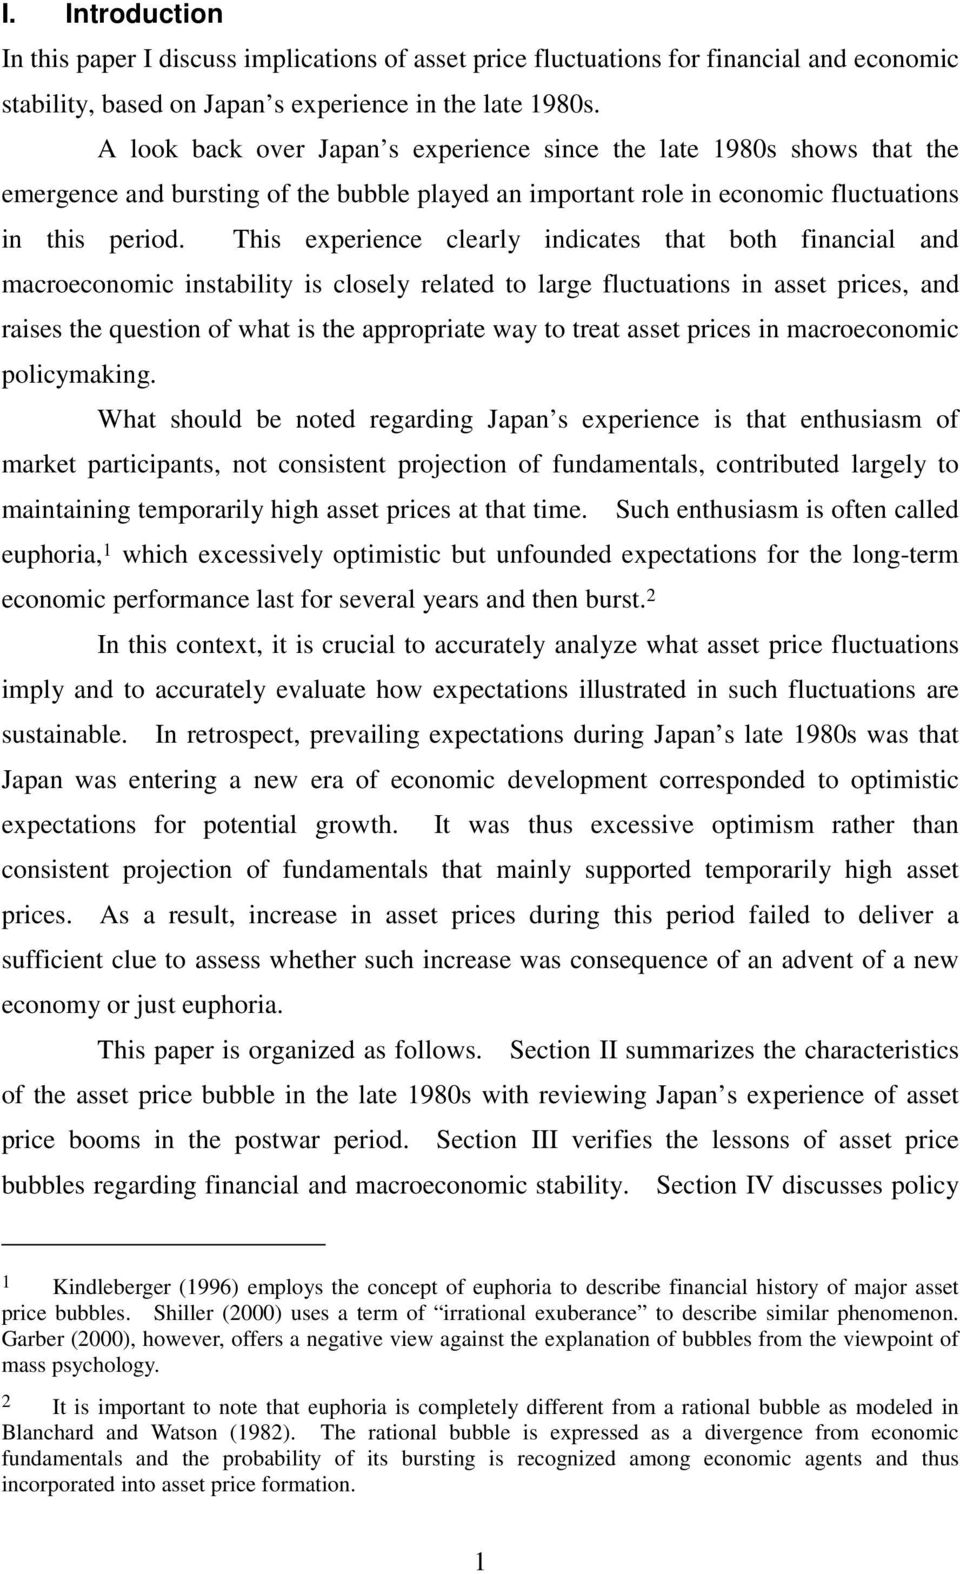 This experience clearly indicates that both financial and macroeconomic instability is closely related to large fluctuations in asset prices, and raises the question of what is the appropriate way to